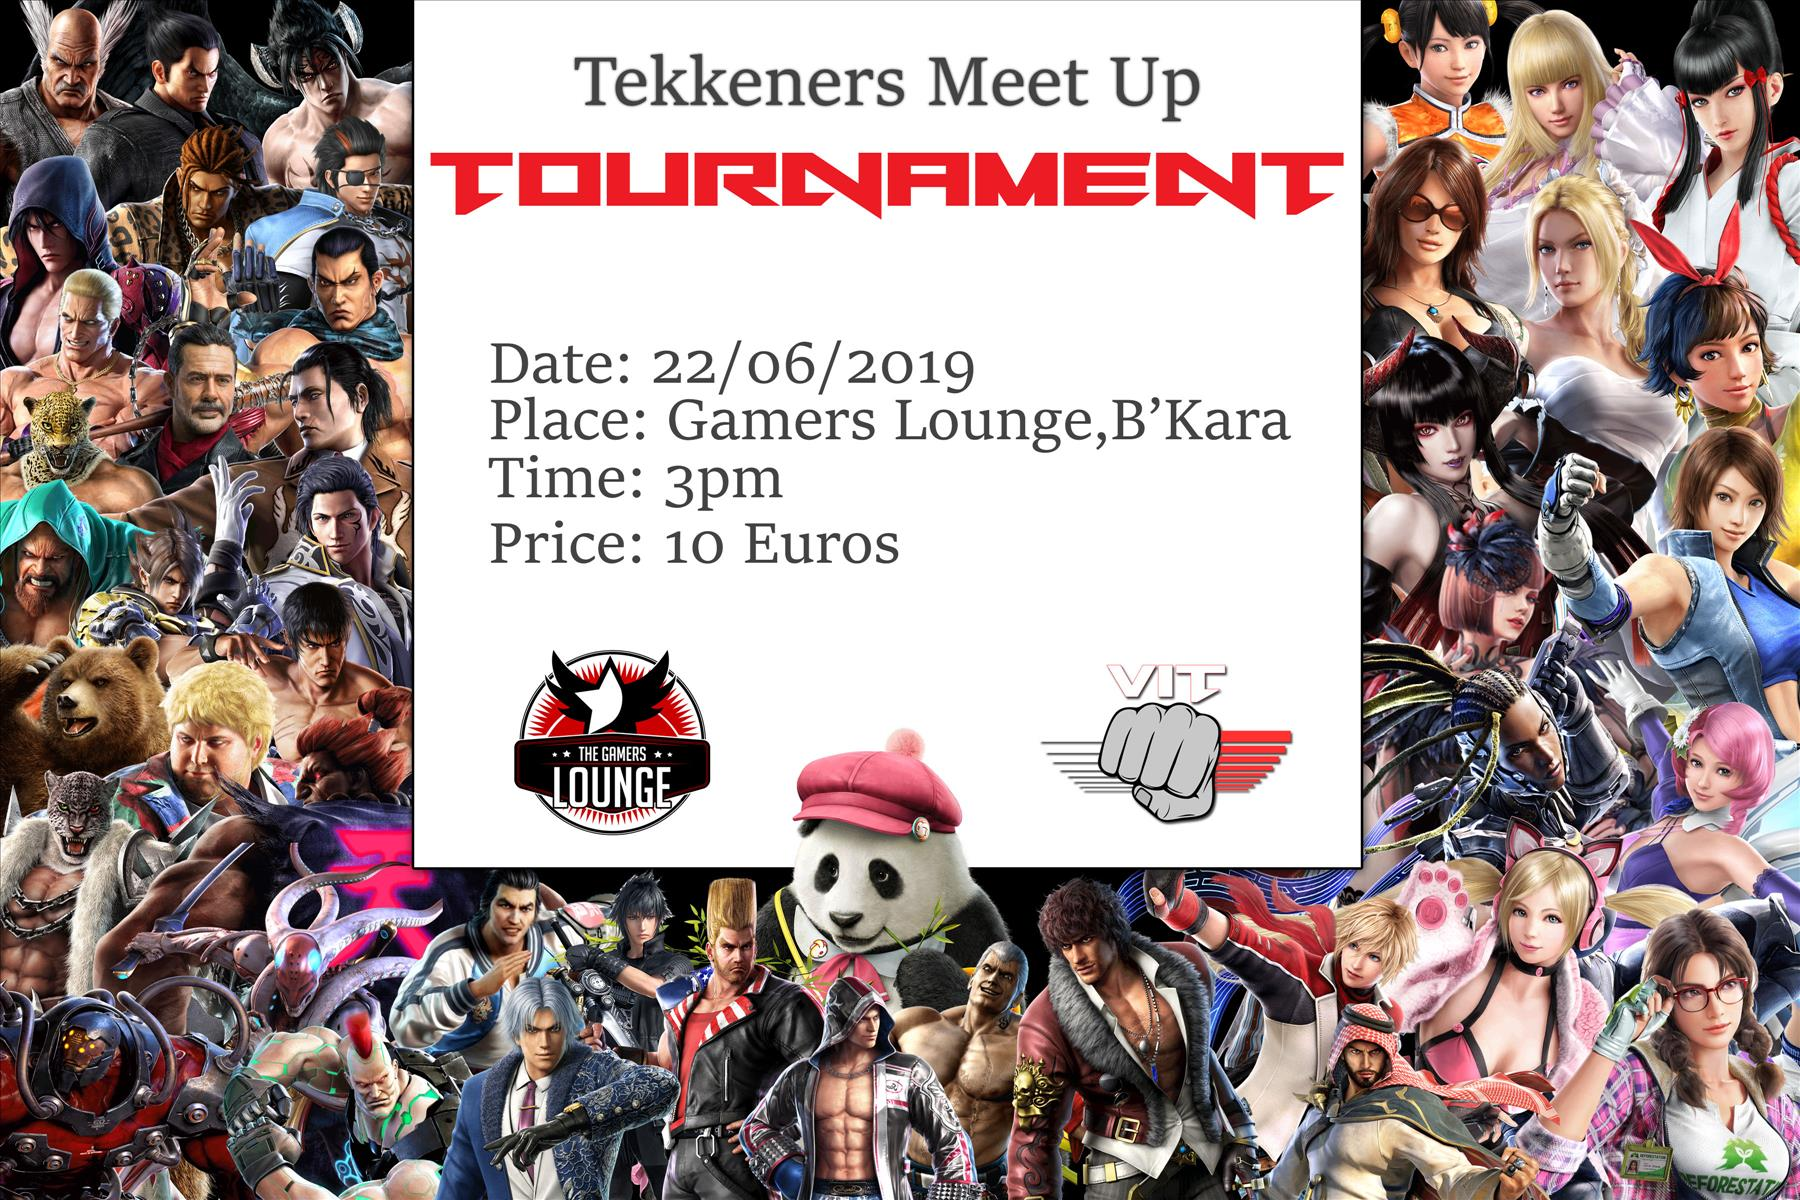 Tekkeners Meet Up flyer